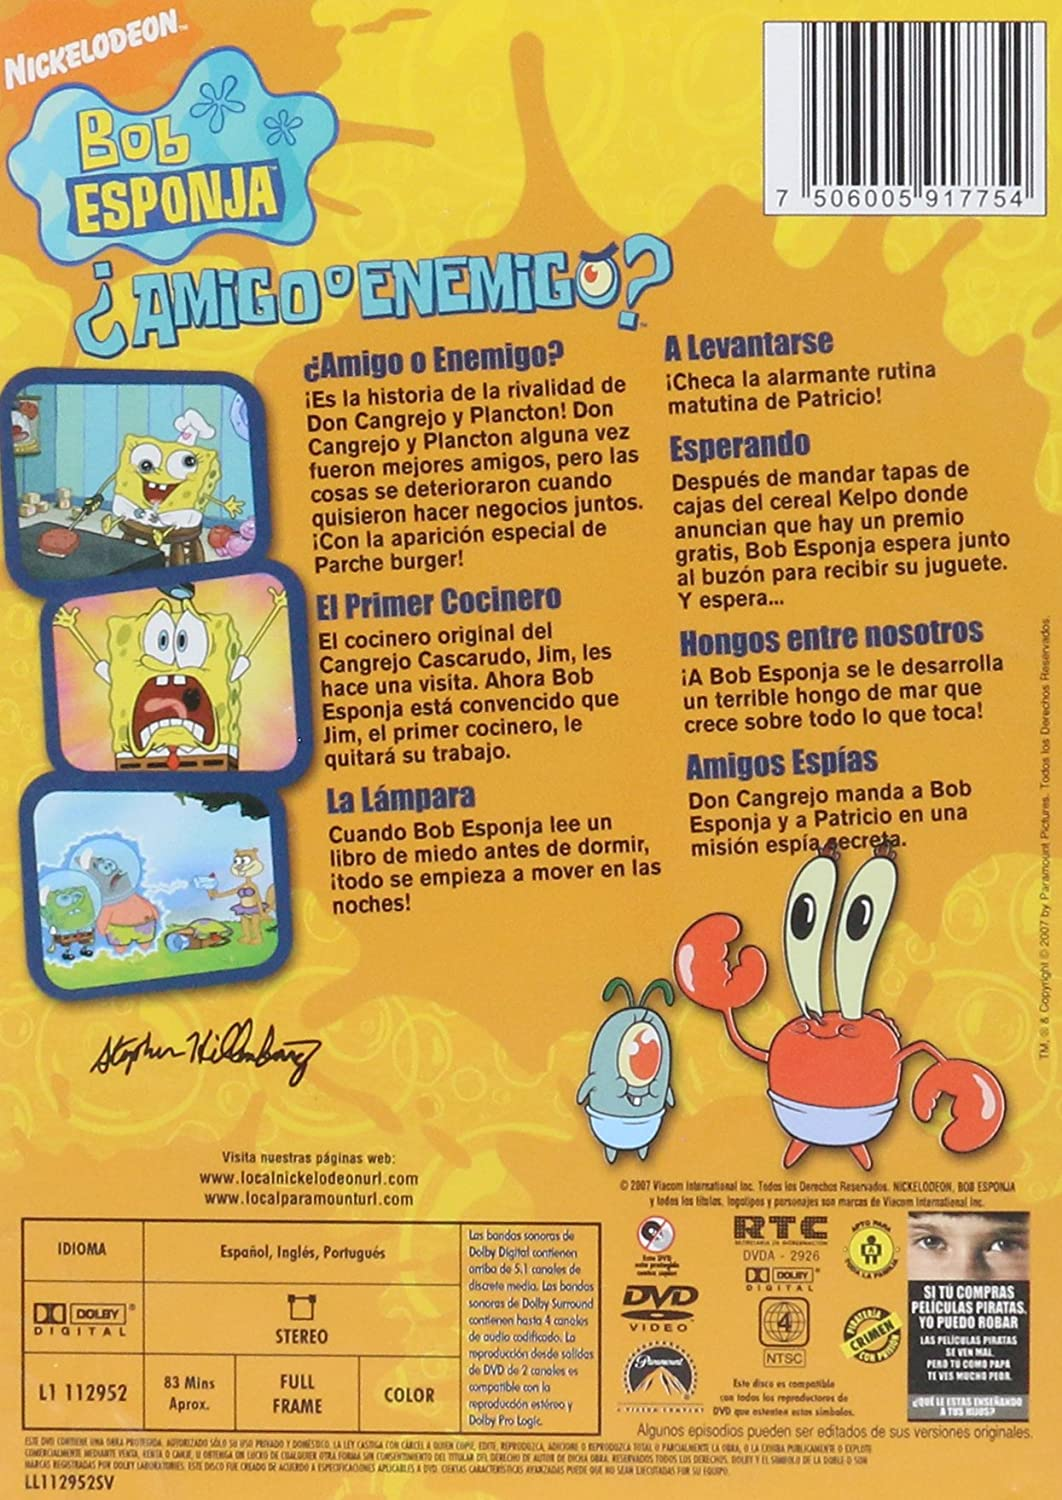 Amazon.com: Bob Esponja: ¿Amigo O Enemigos? and SpongeBob Squarepants Christmas (2 DISCS): Everything Else